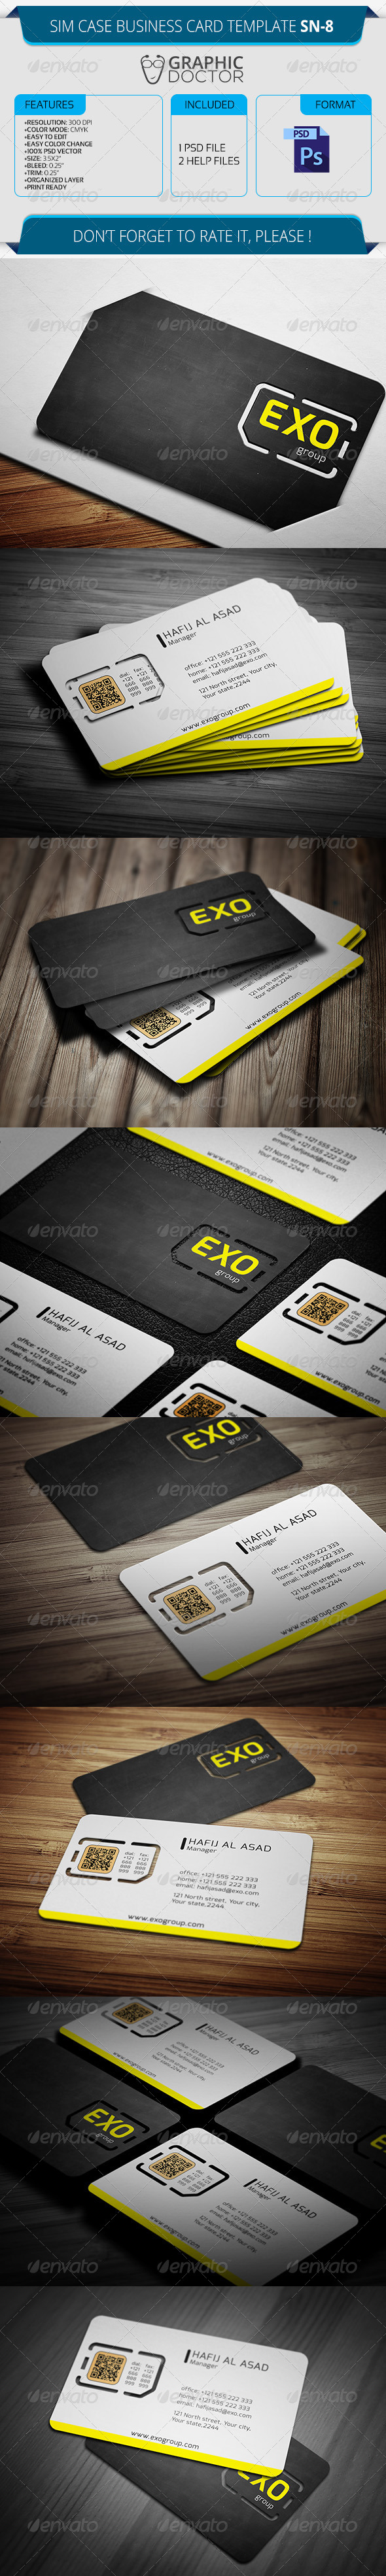 Sim Case Business Card Template SN-8 - Real Objects Business Cards